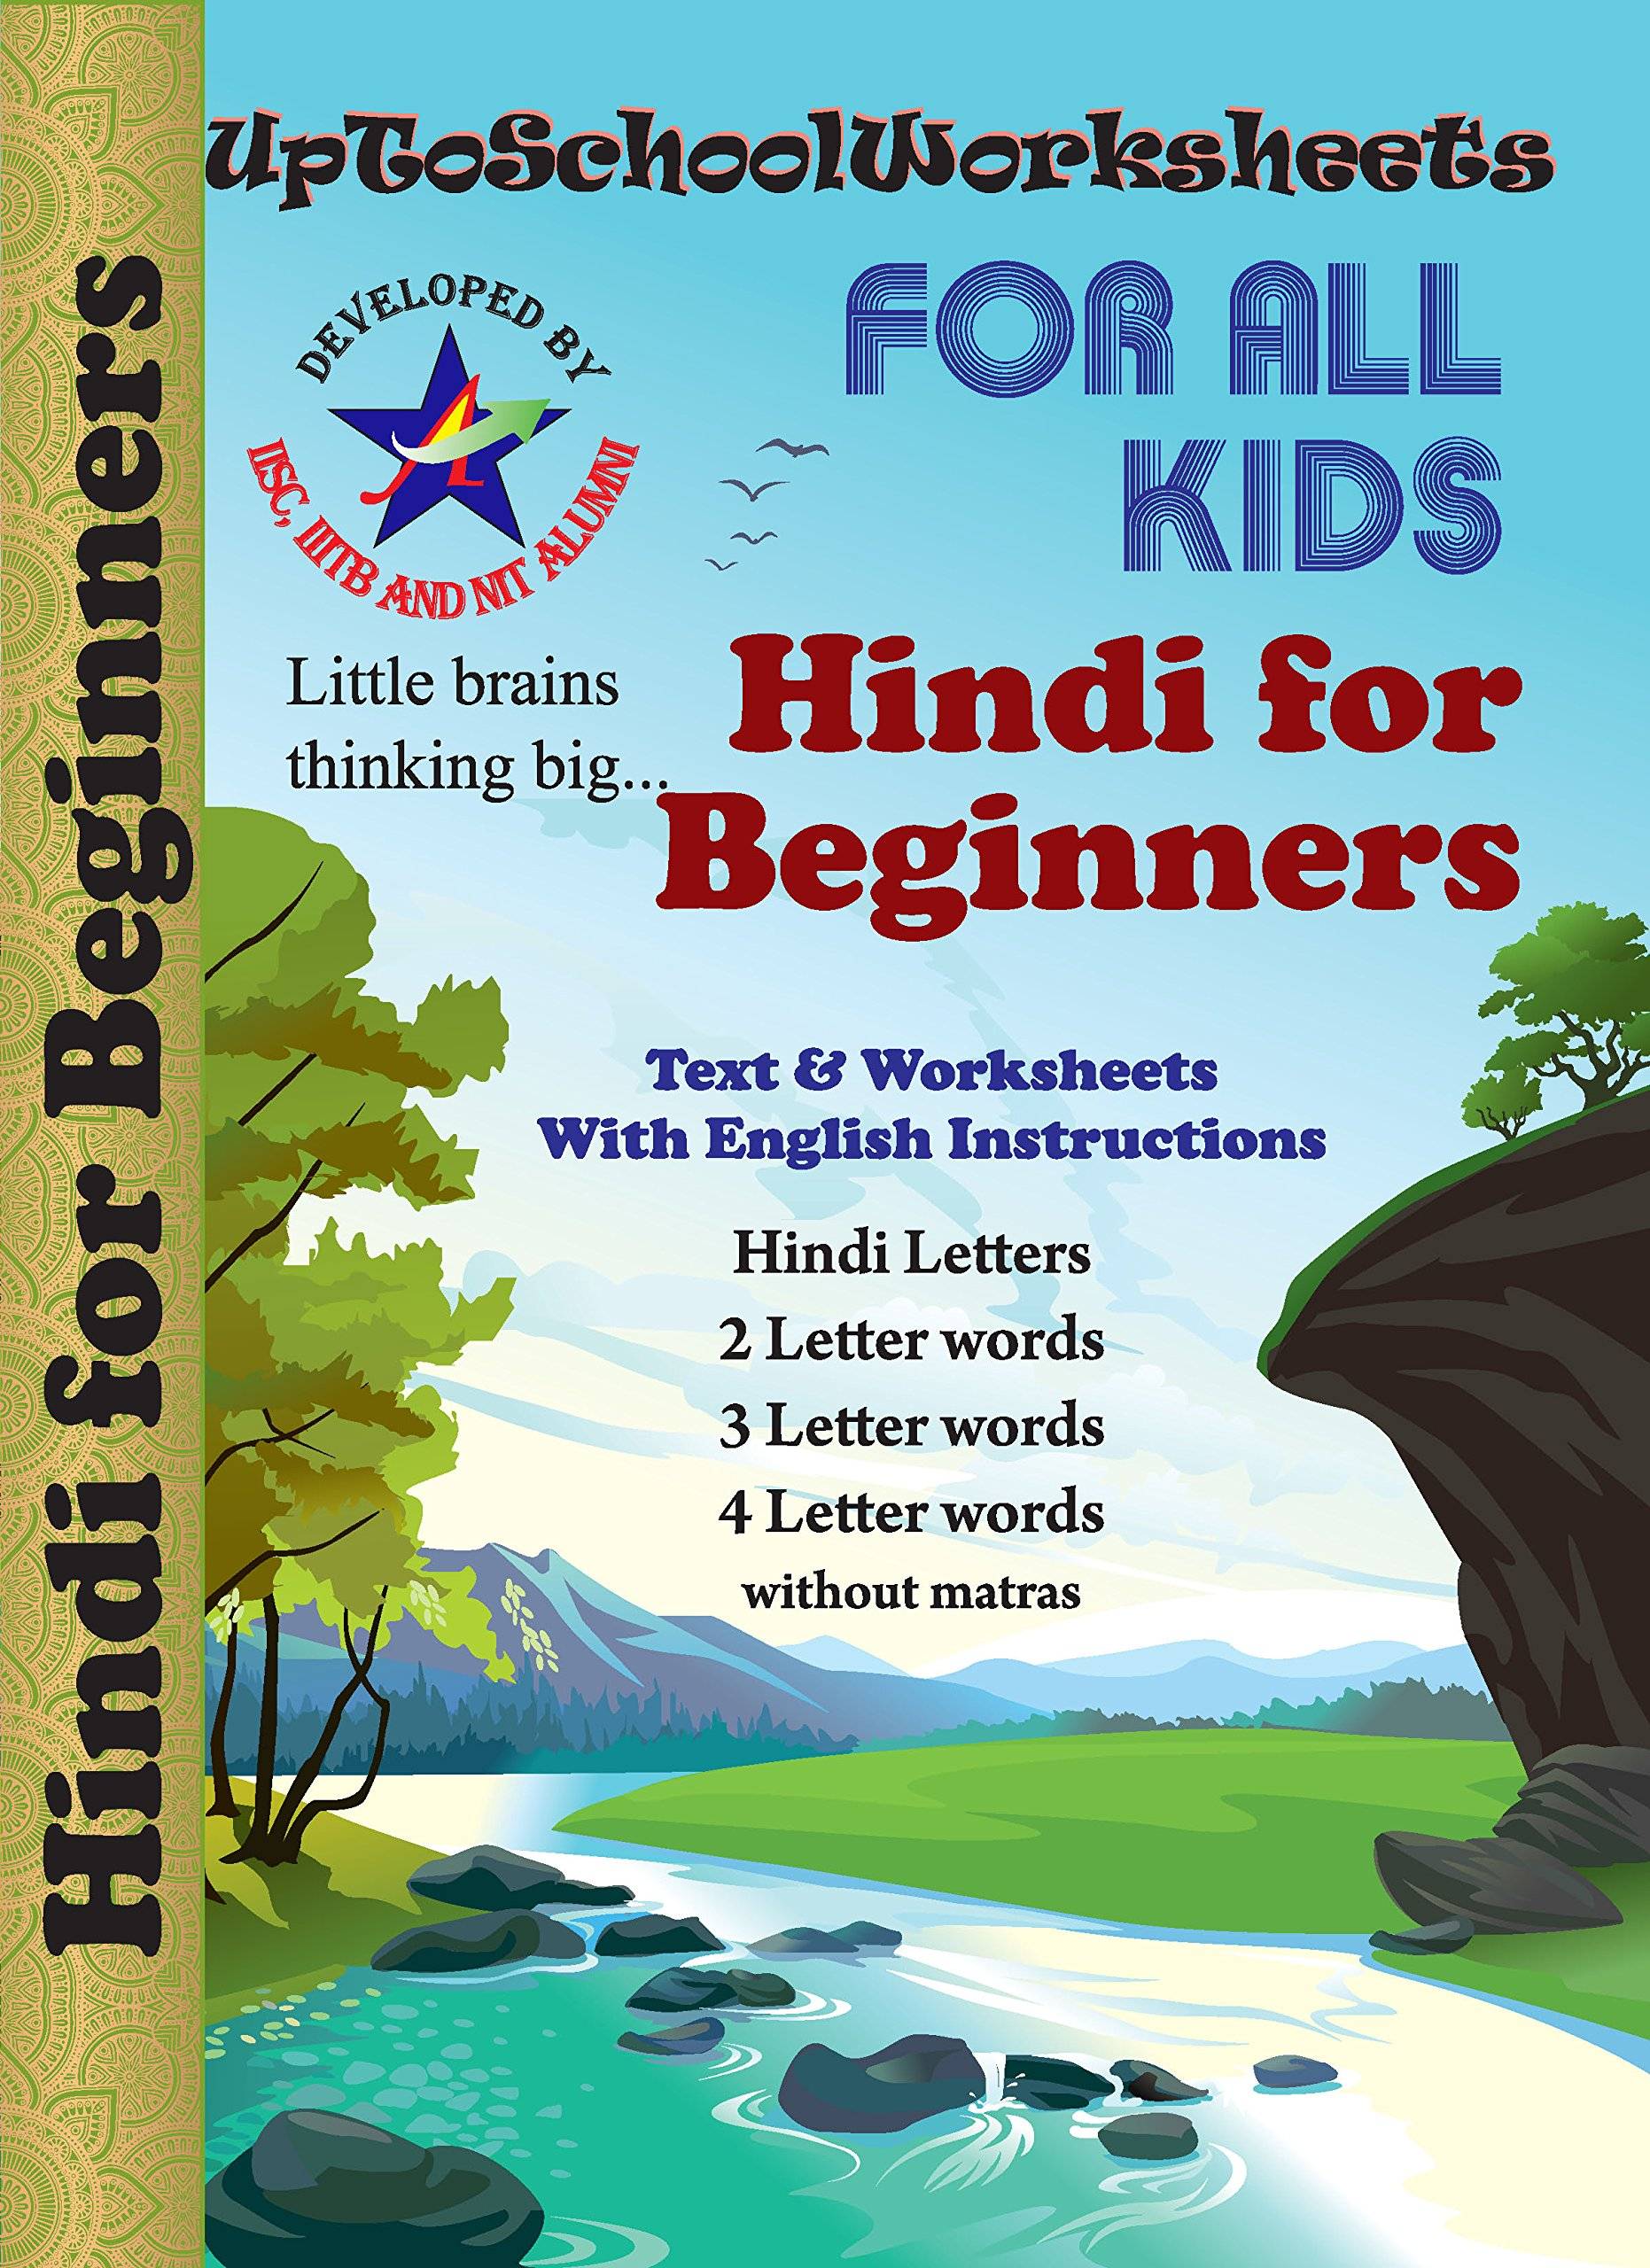 Hindi 3 Letter Words Worksheets Images - reference letter template word